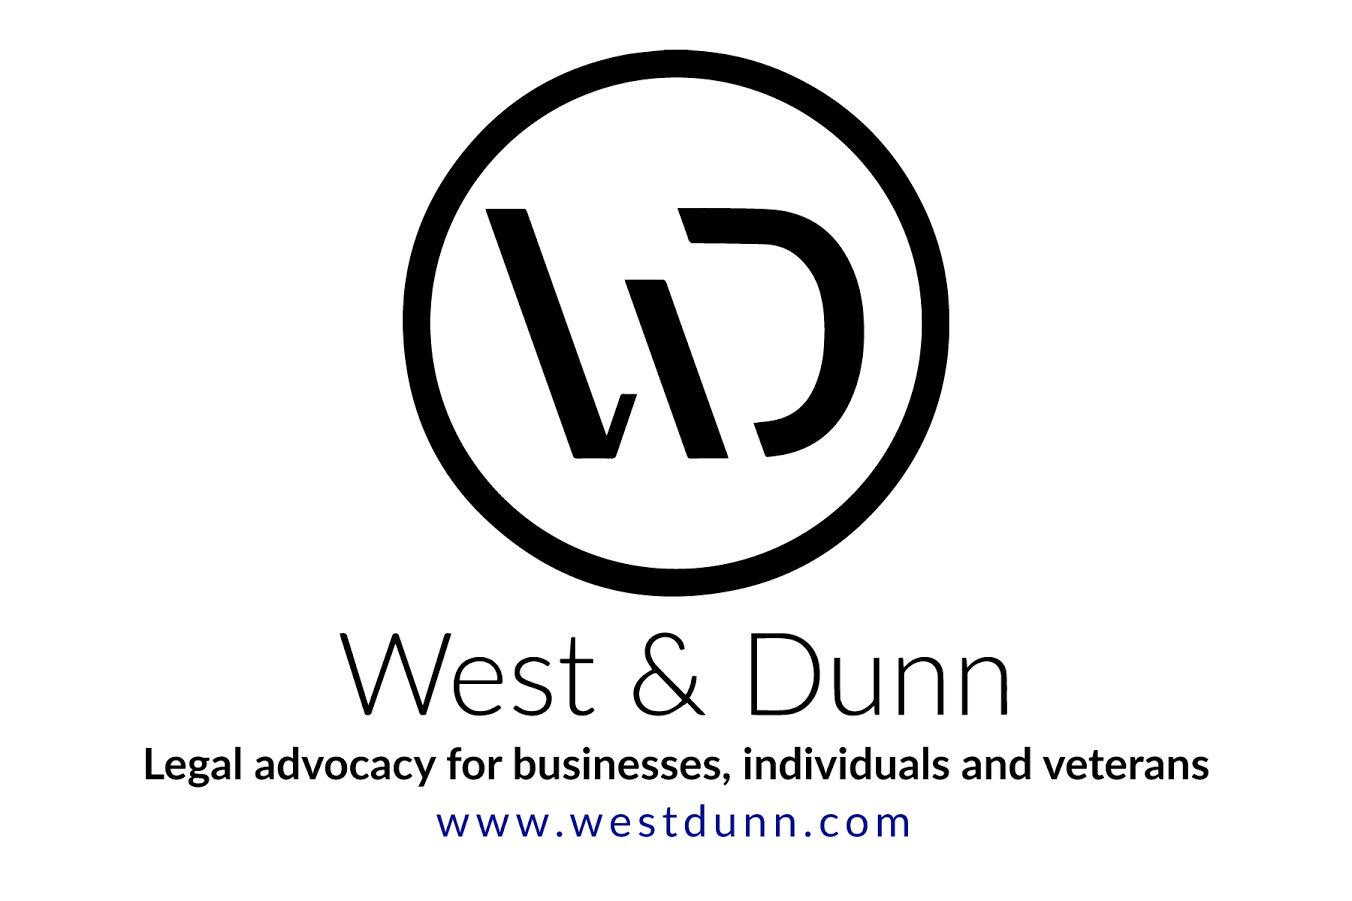 West and Dunn Veterans Advocacy logo